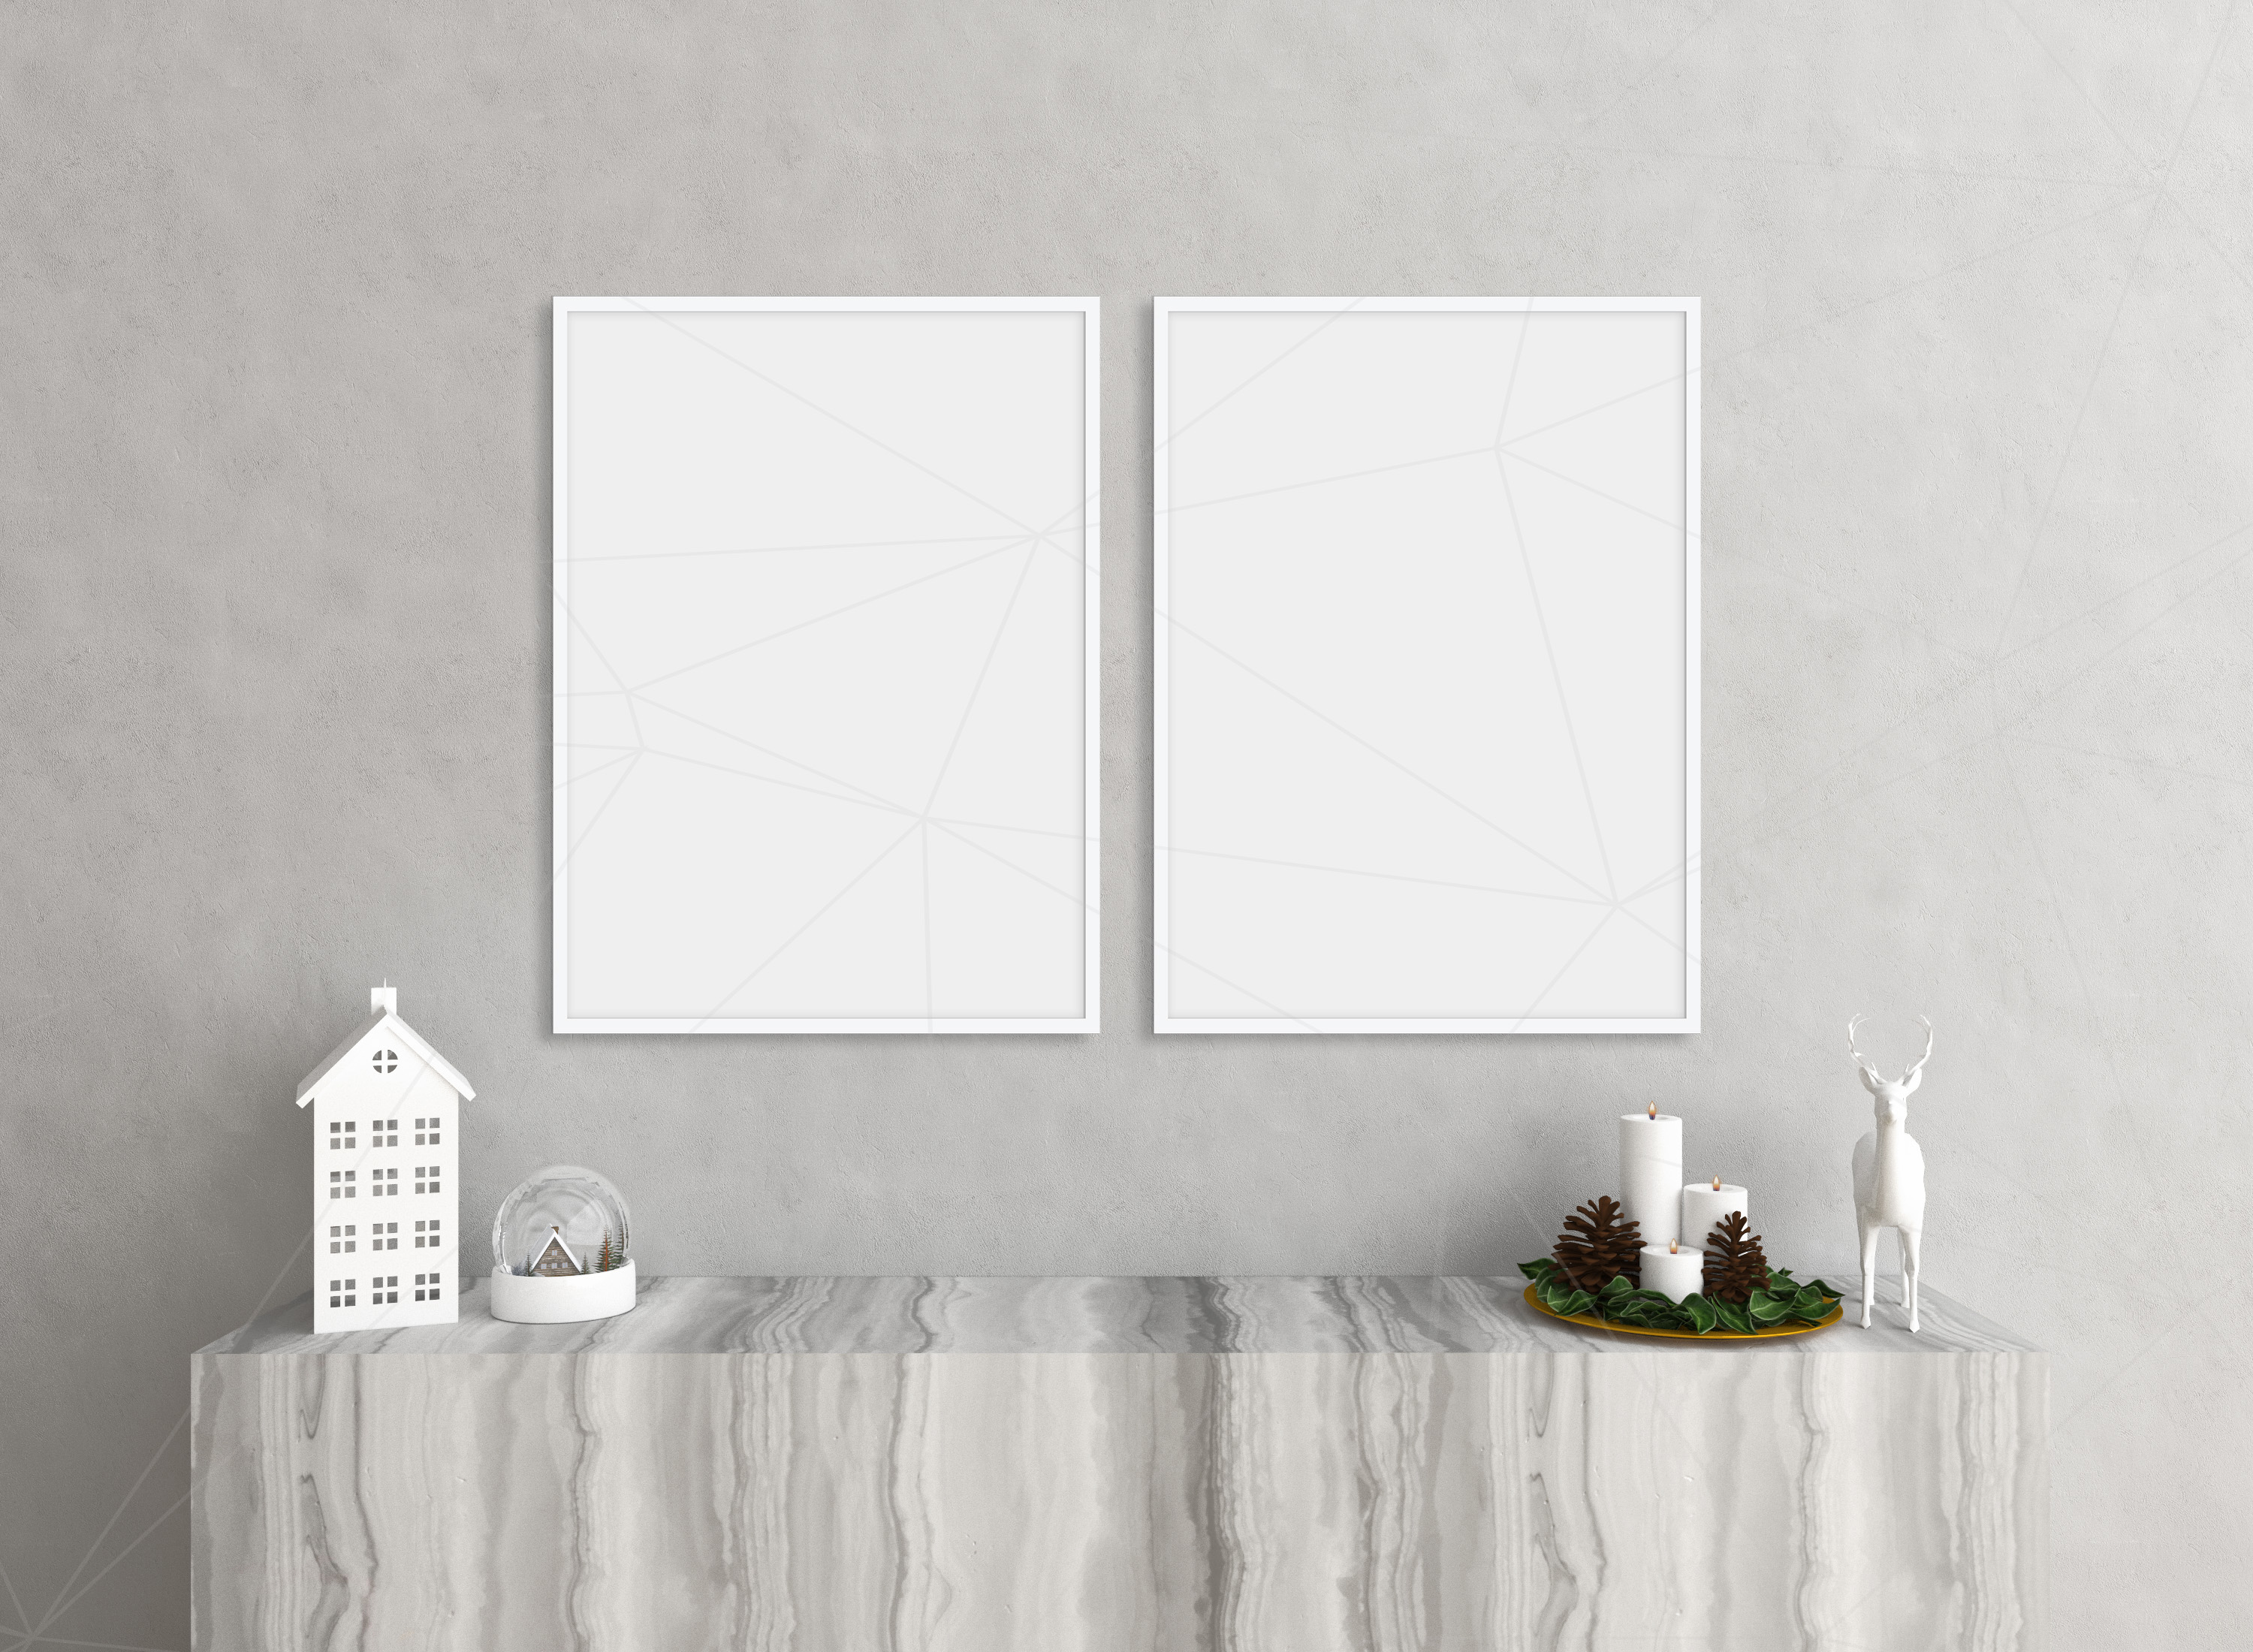 Christmas interior mockup bundle - blank wall mock up example image 3